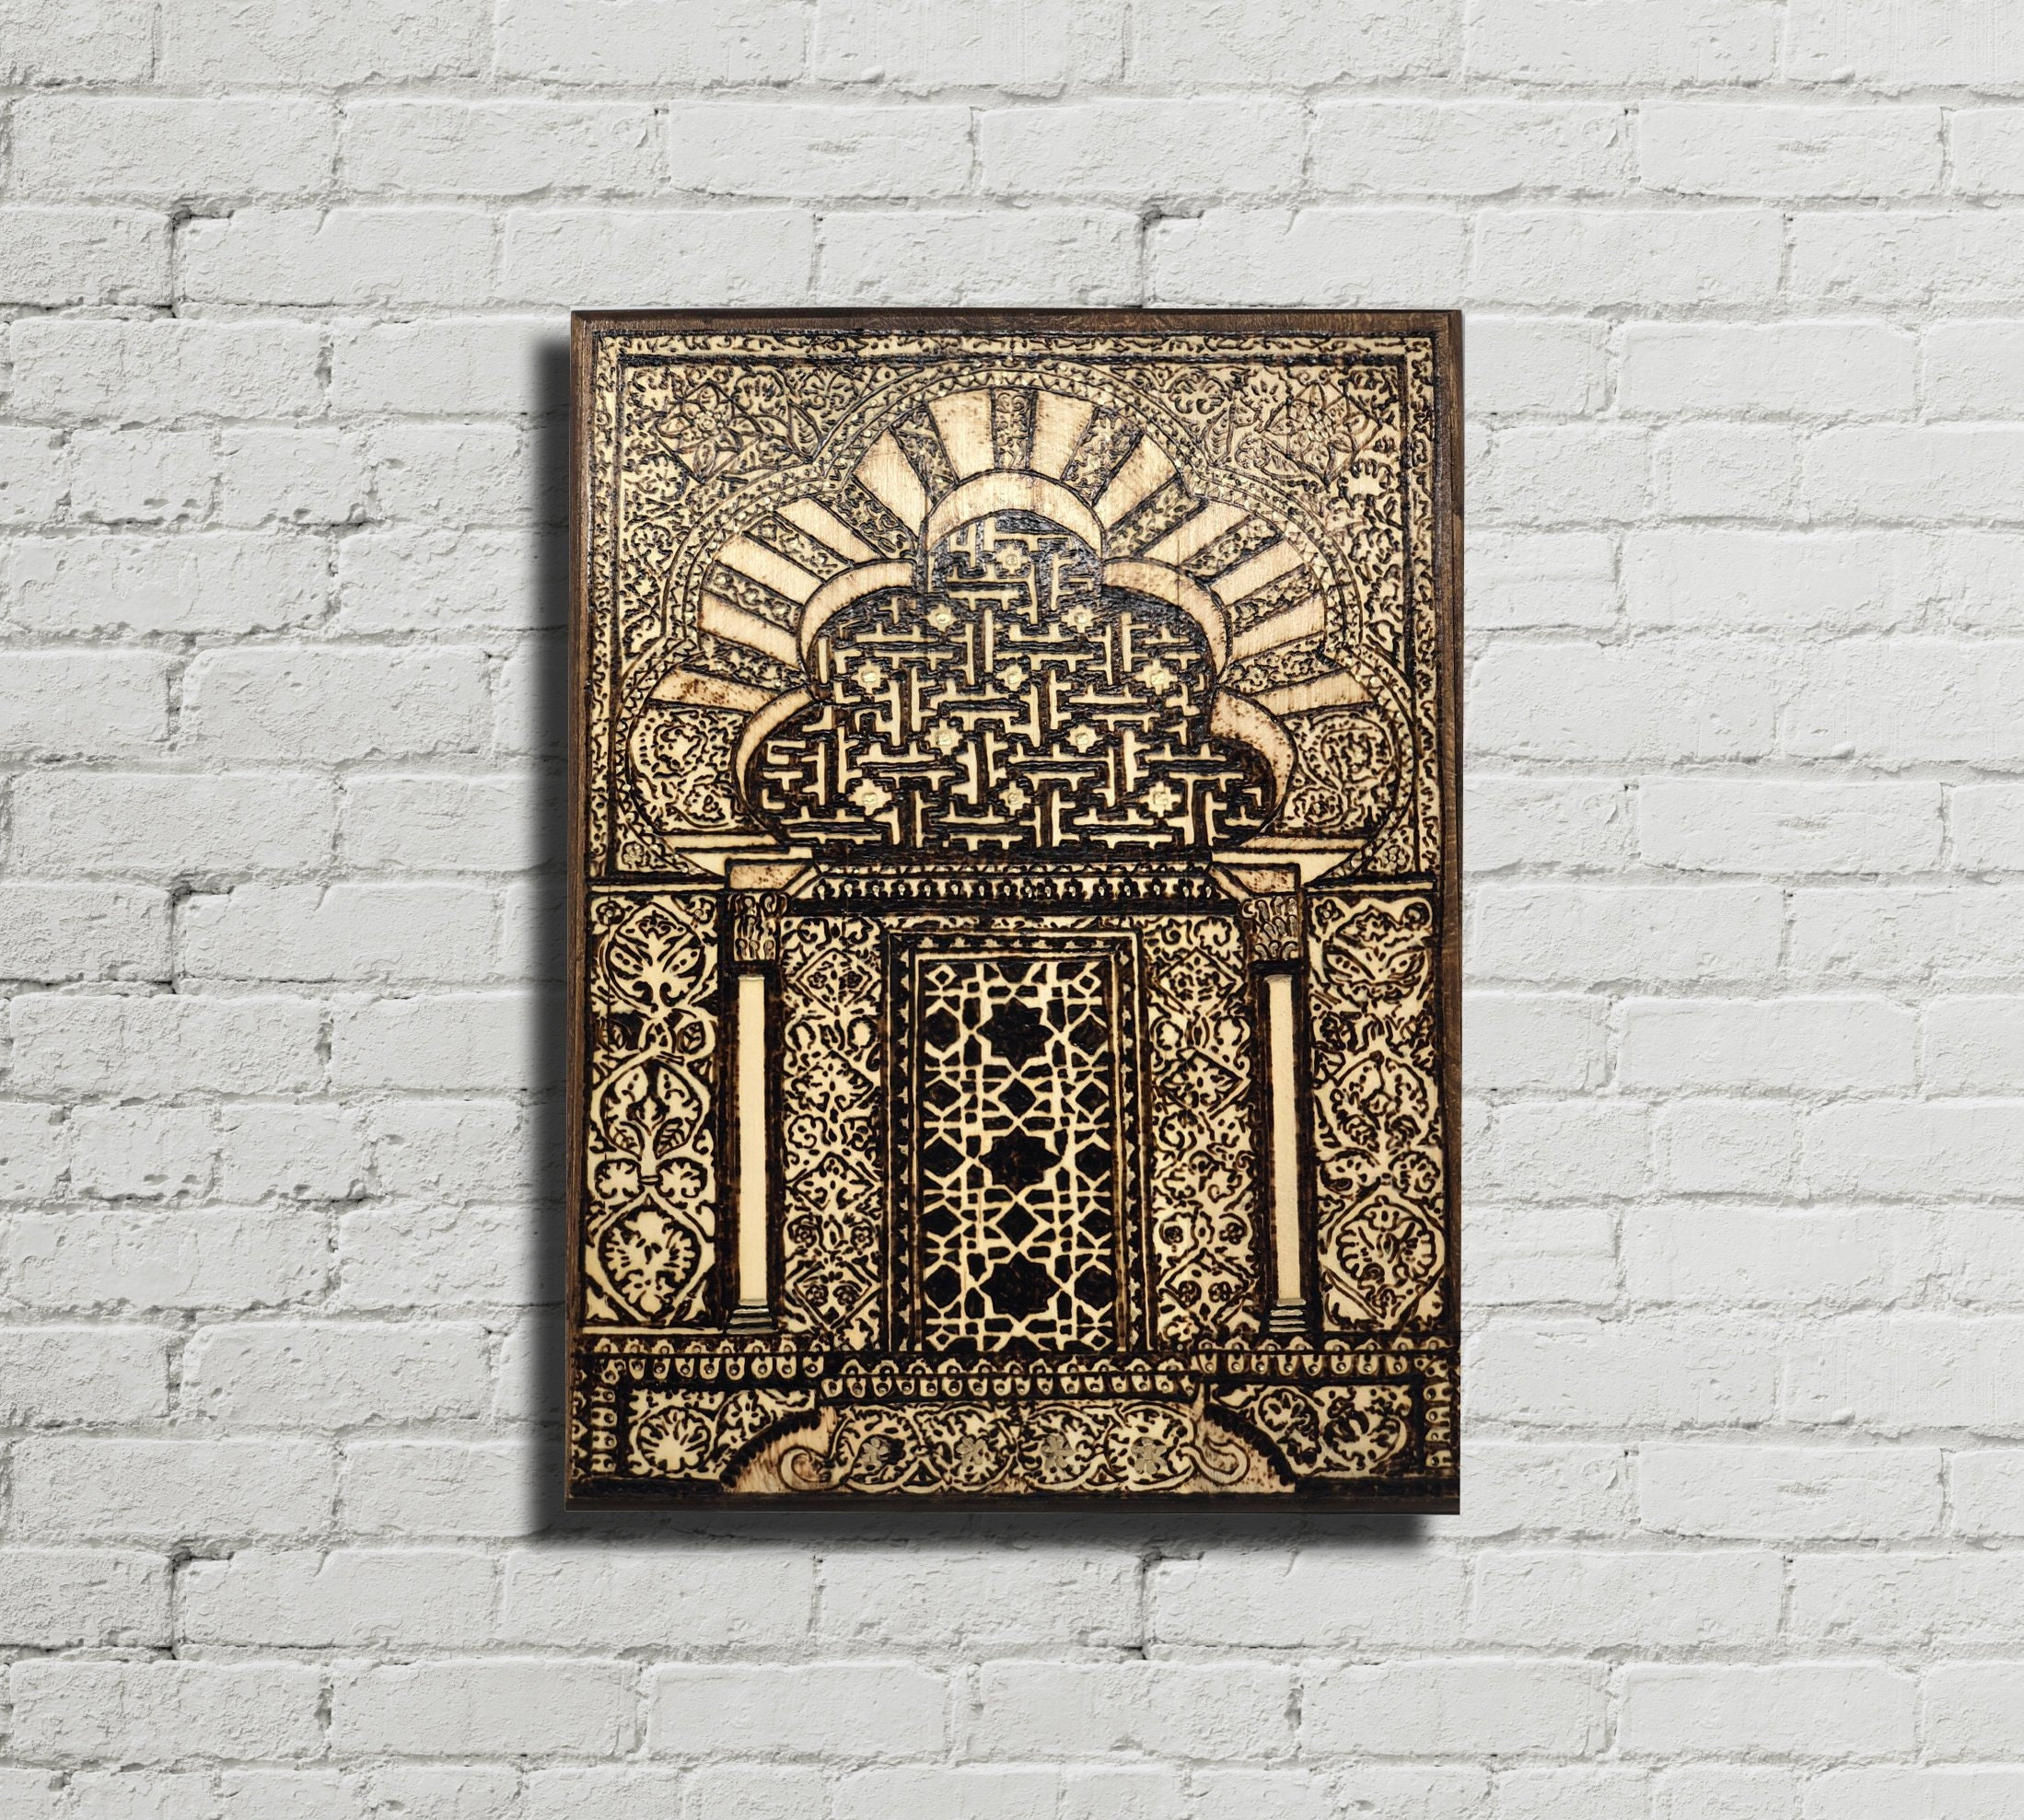 The Arabesque Cordoban Dream 12 x 16 Wooden Wall Art Plaque Depicting  Architectural Features From the Great Mosque of Cordoba Spain